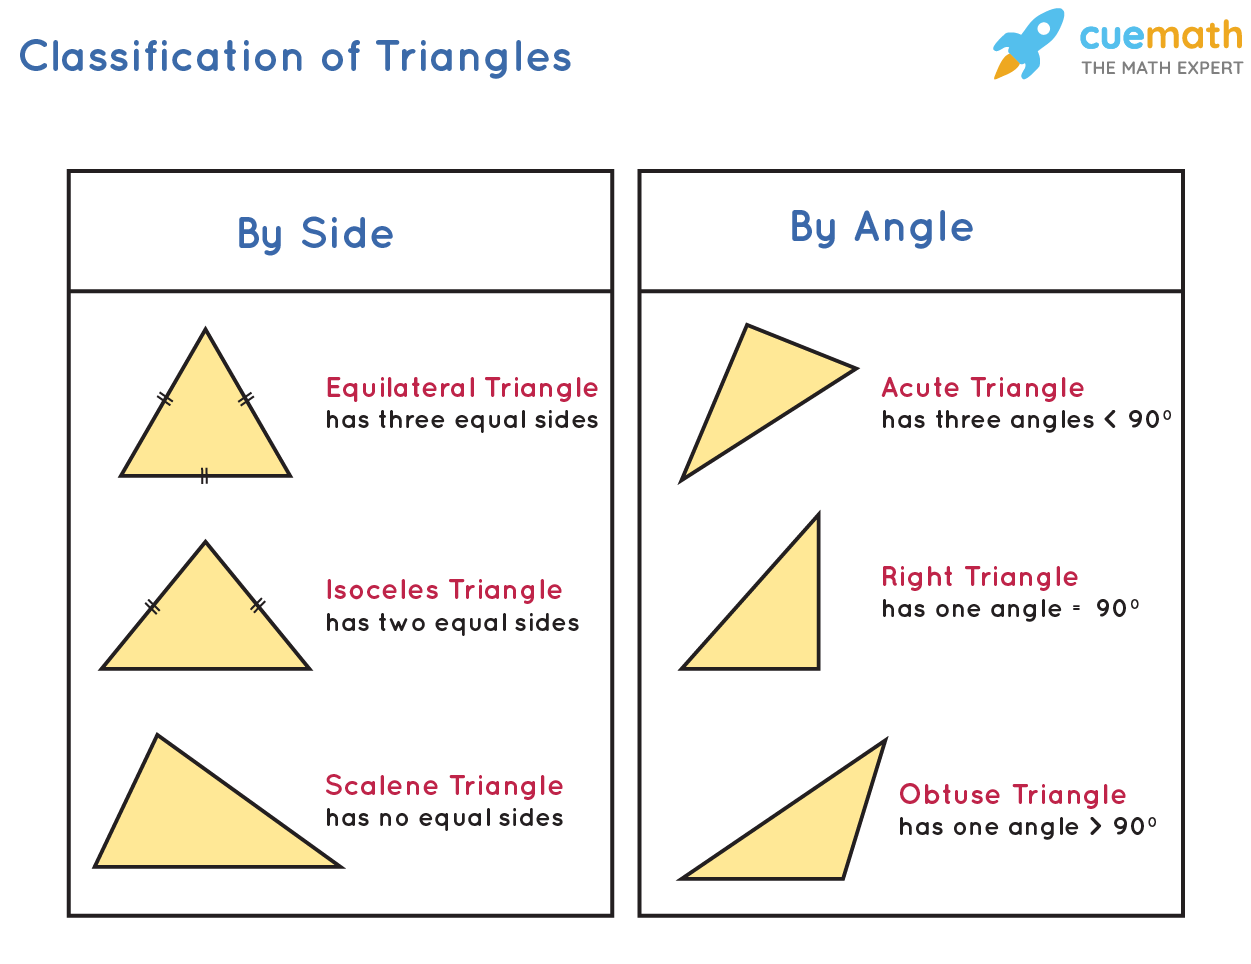 Classification of Triangles: Based on Sides and Based on Angles